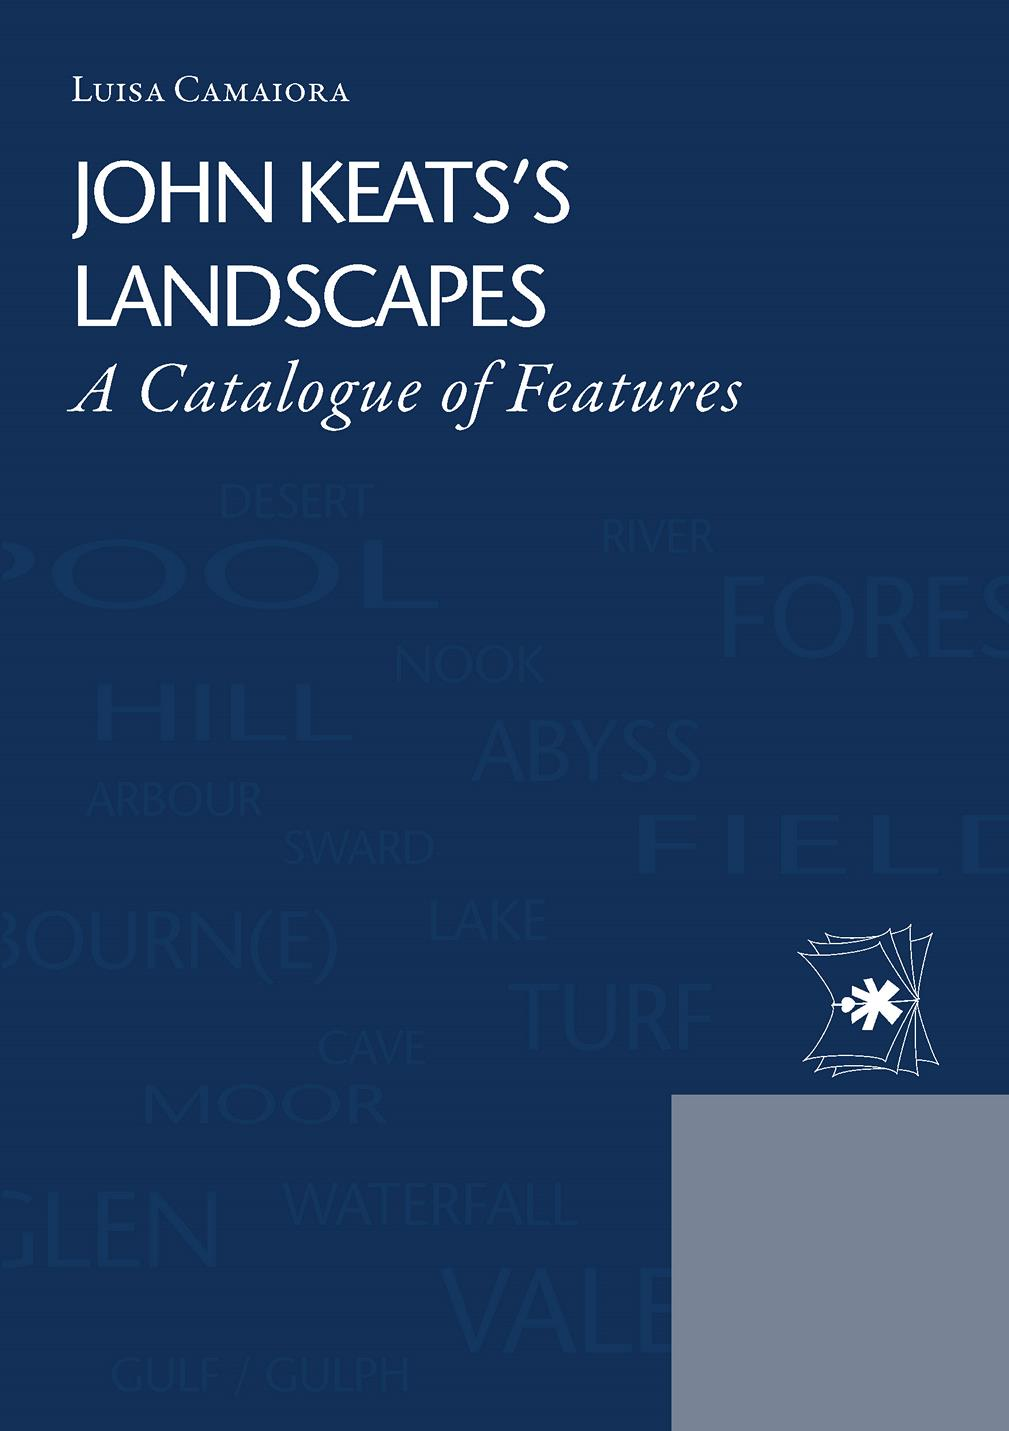 JOHN KEATS'S LANDSCAPES A CATALOGUE OF FEATURES